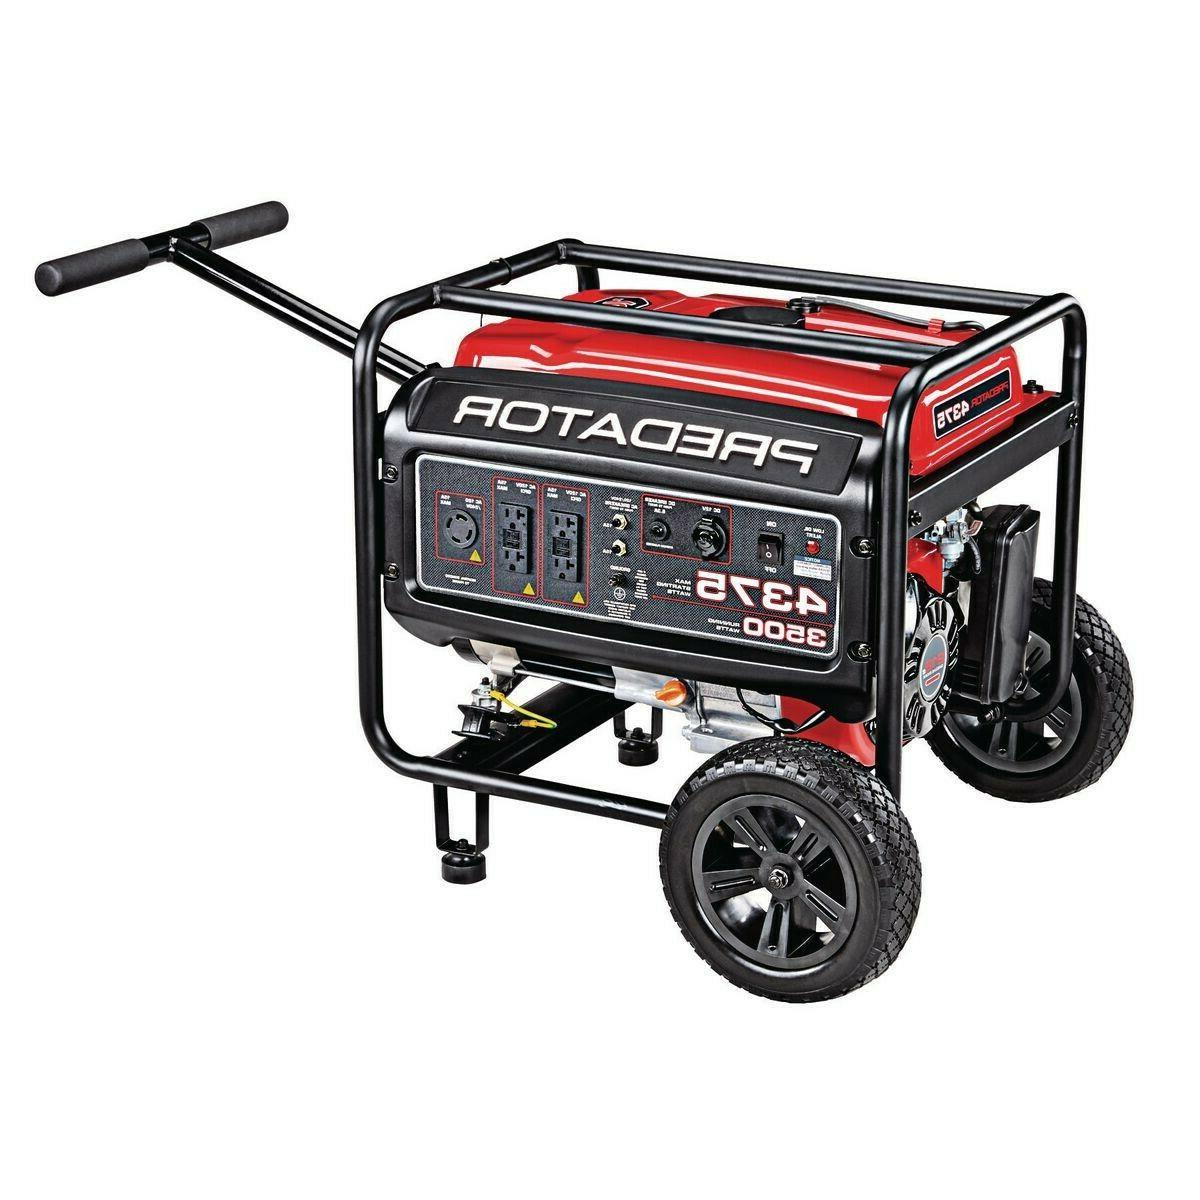 PREDATOR 4375 Watt Starting Extra Gas Powered Generator